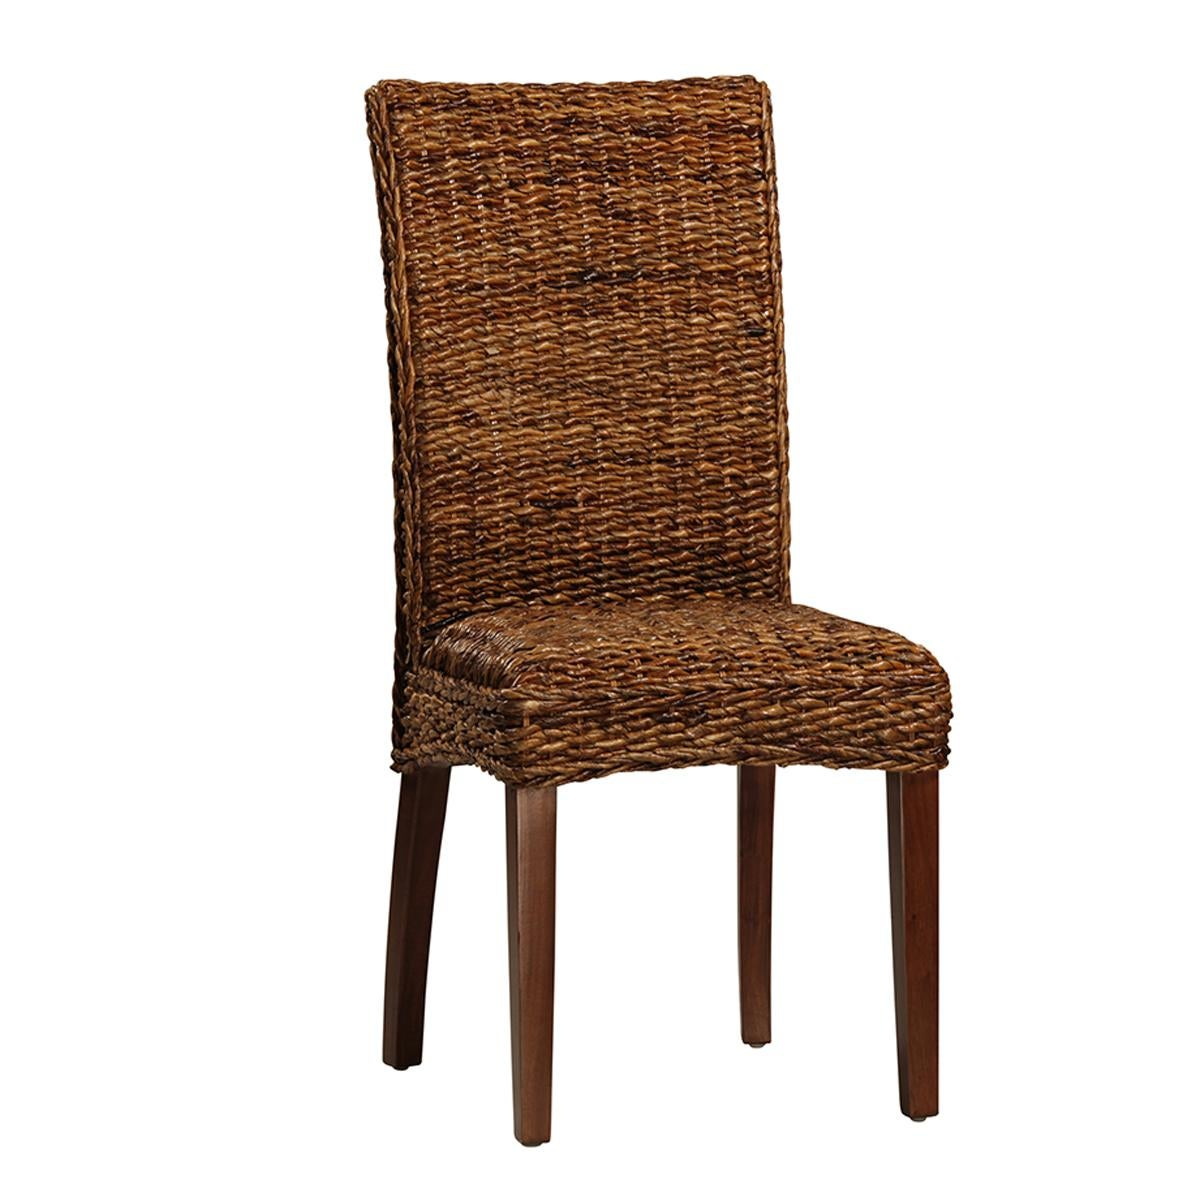 Banana Rocker Chair Woven Banana Leaf Dining Chair Chairish